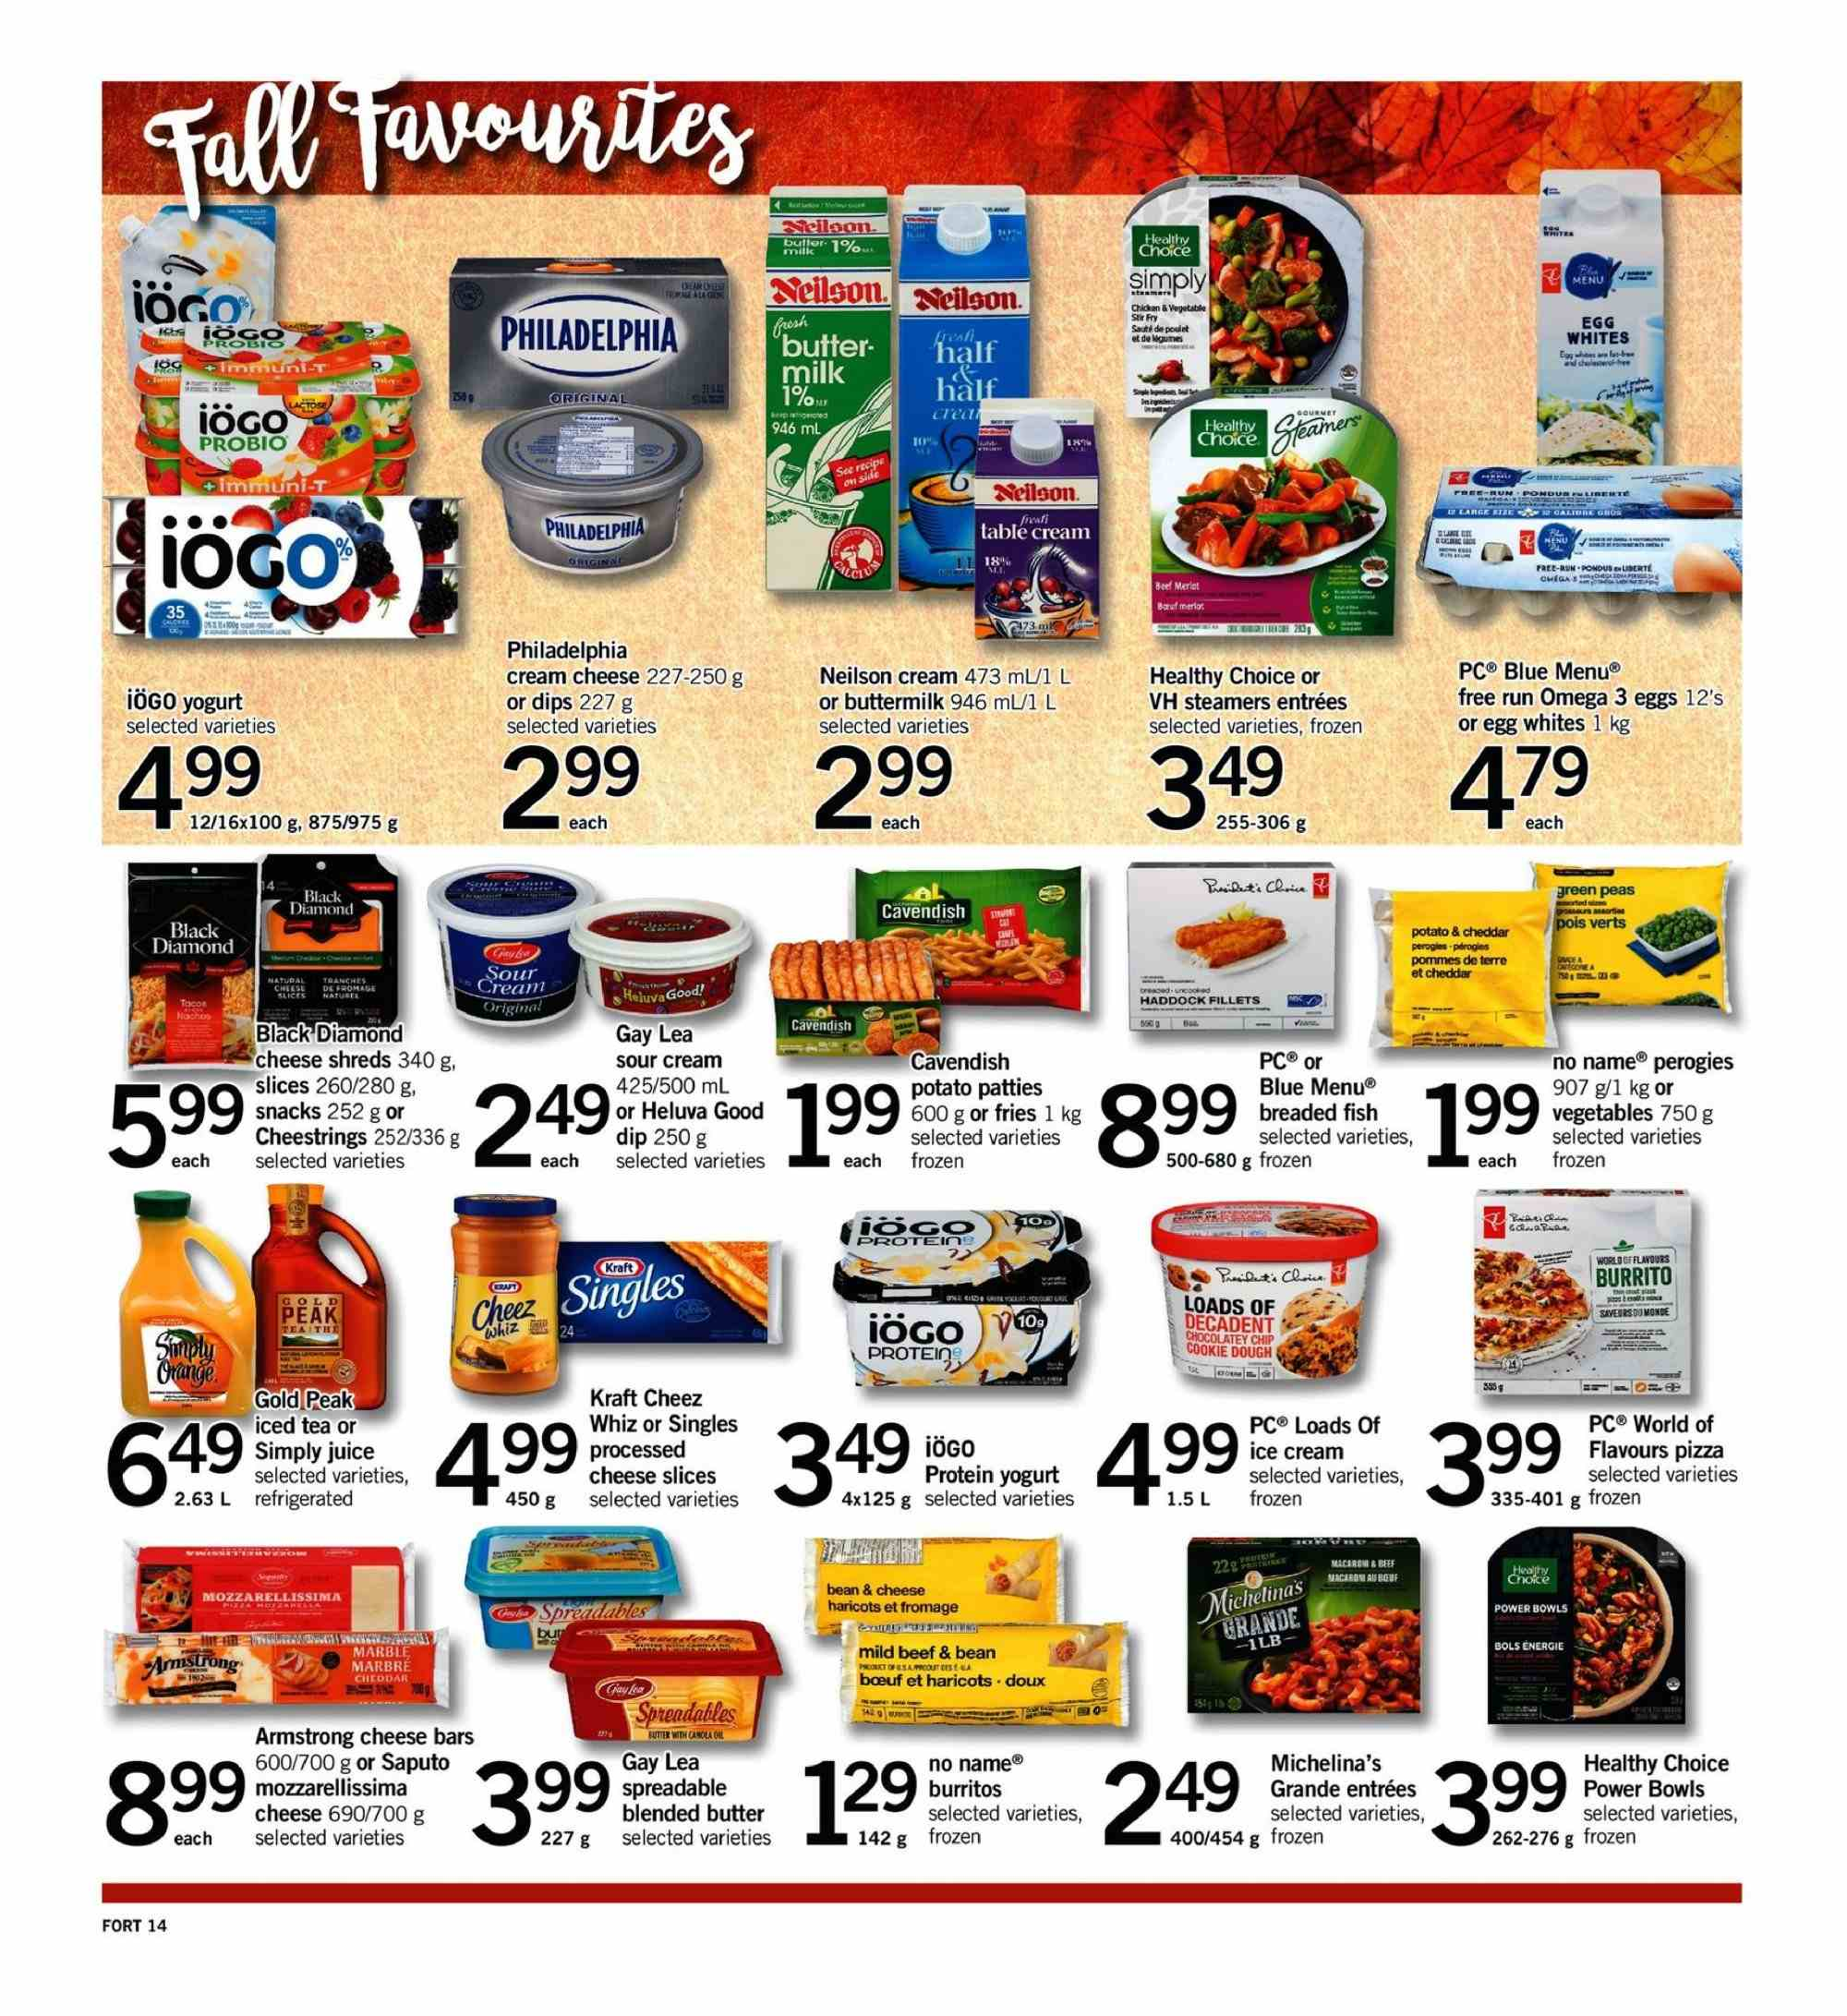 Fortinos Flyer  - September 13, 2018 - September 19, 2018. Page 14.